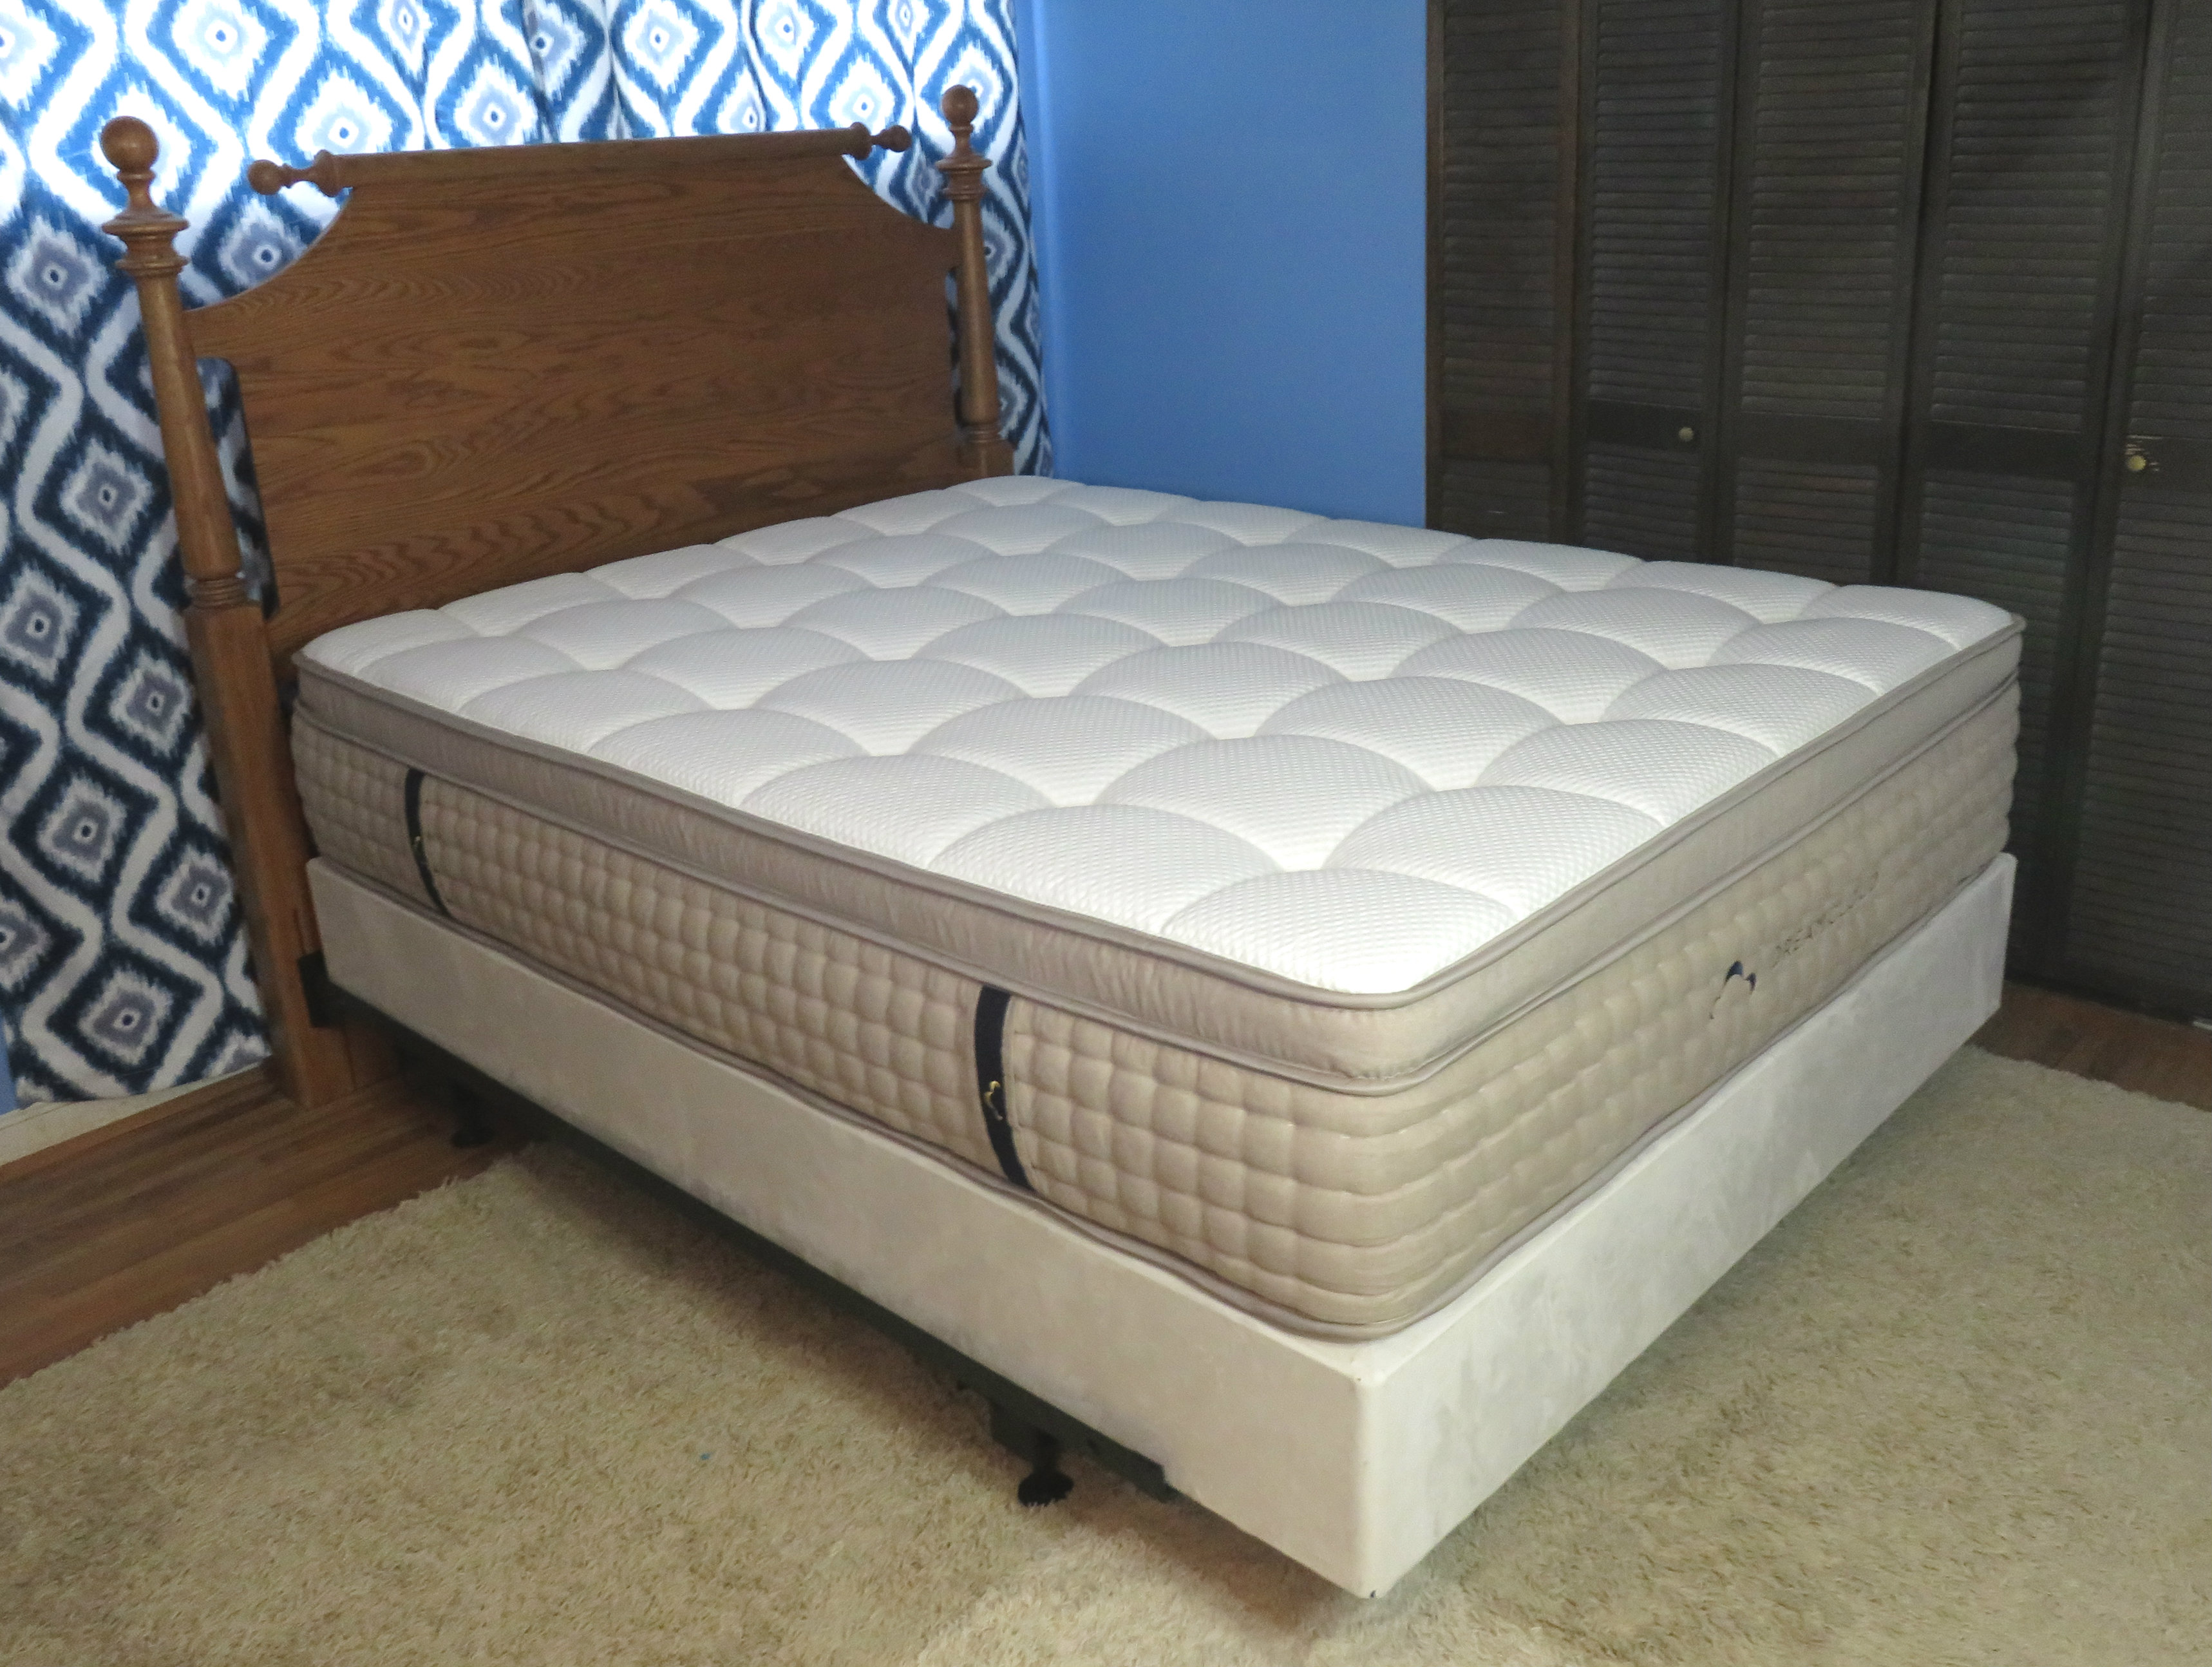 Expanded Queen Mattress Dreamcloud Mattress Review Luxury Bedding Priced Right